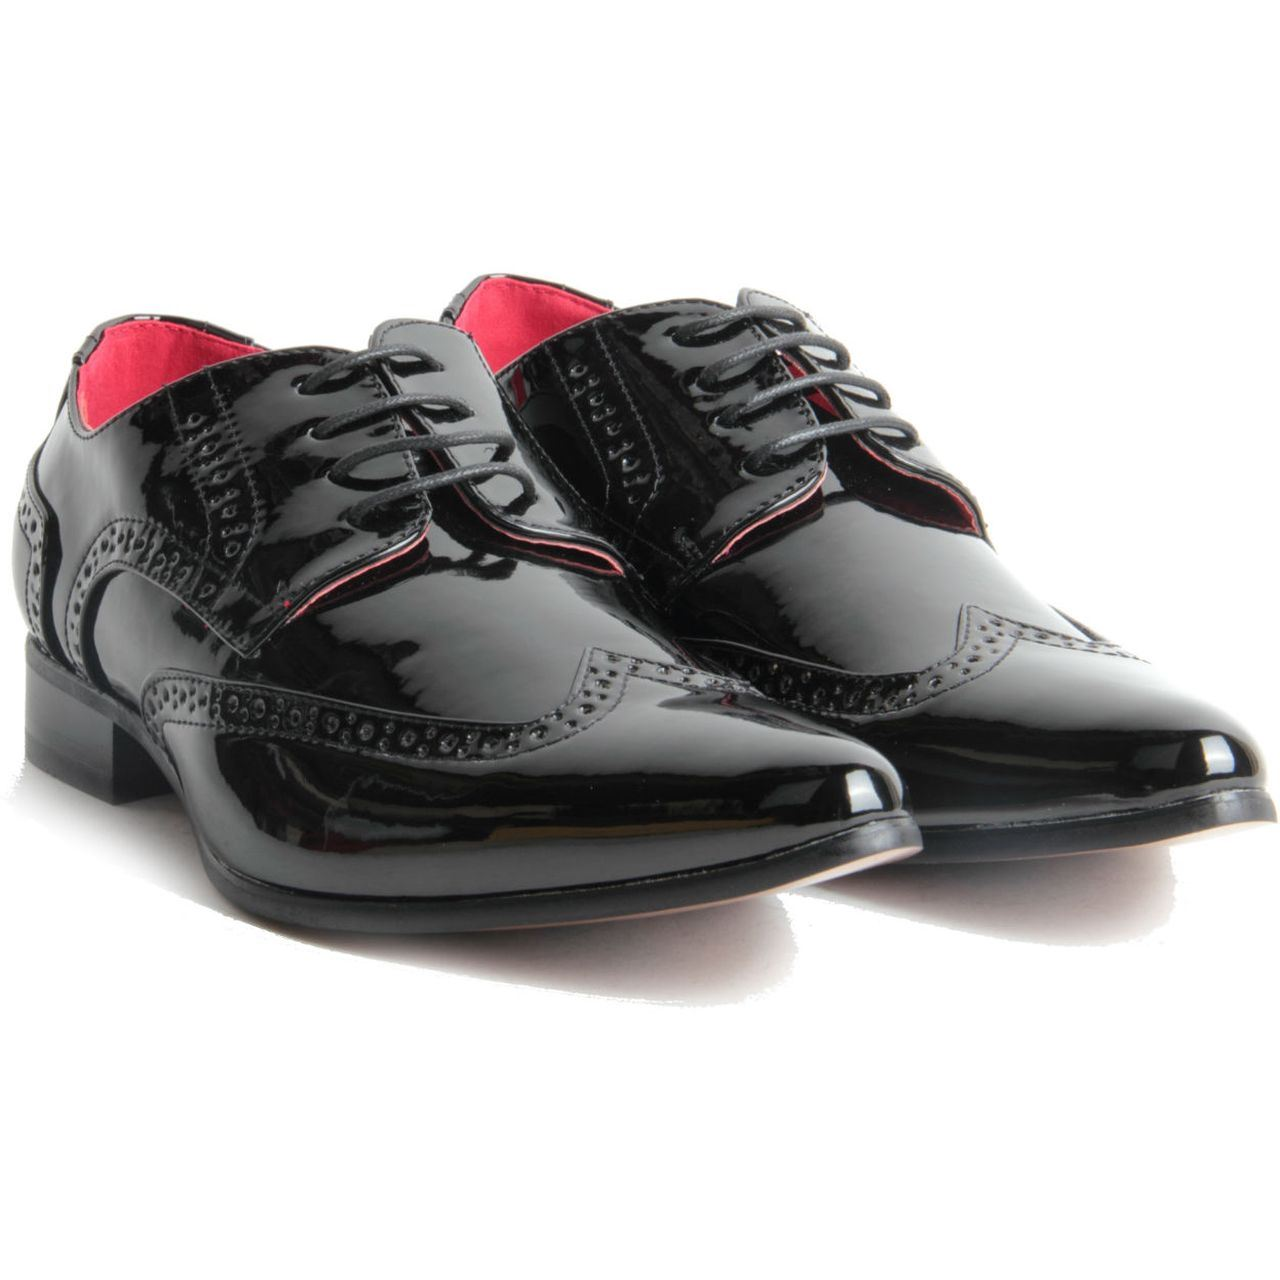 Mens-Smart-Lace-Up-Pointed-Toe-Brogue-Formal-Patent-Leather-Lined-Shoes thumbnail 4